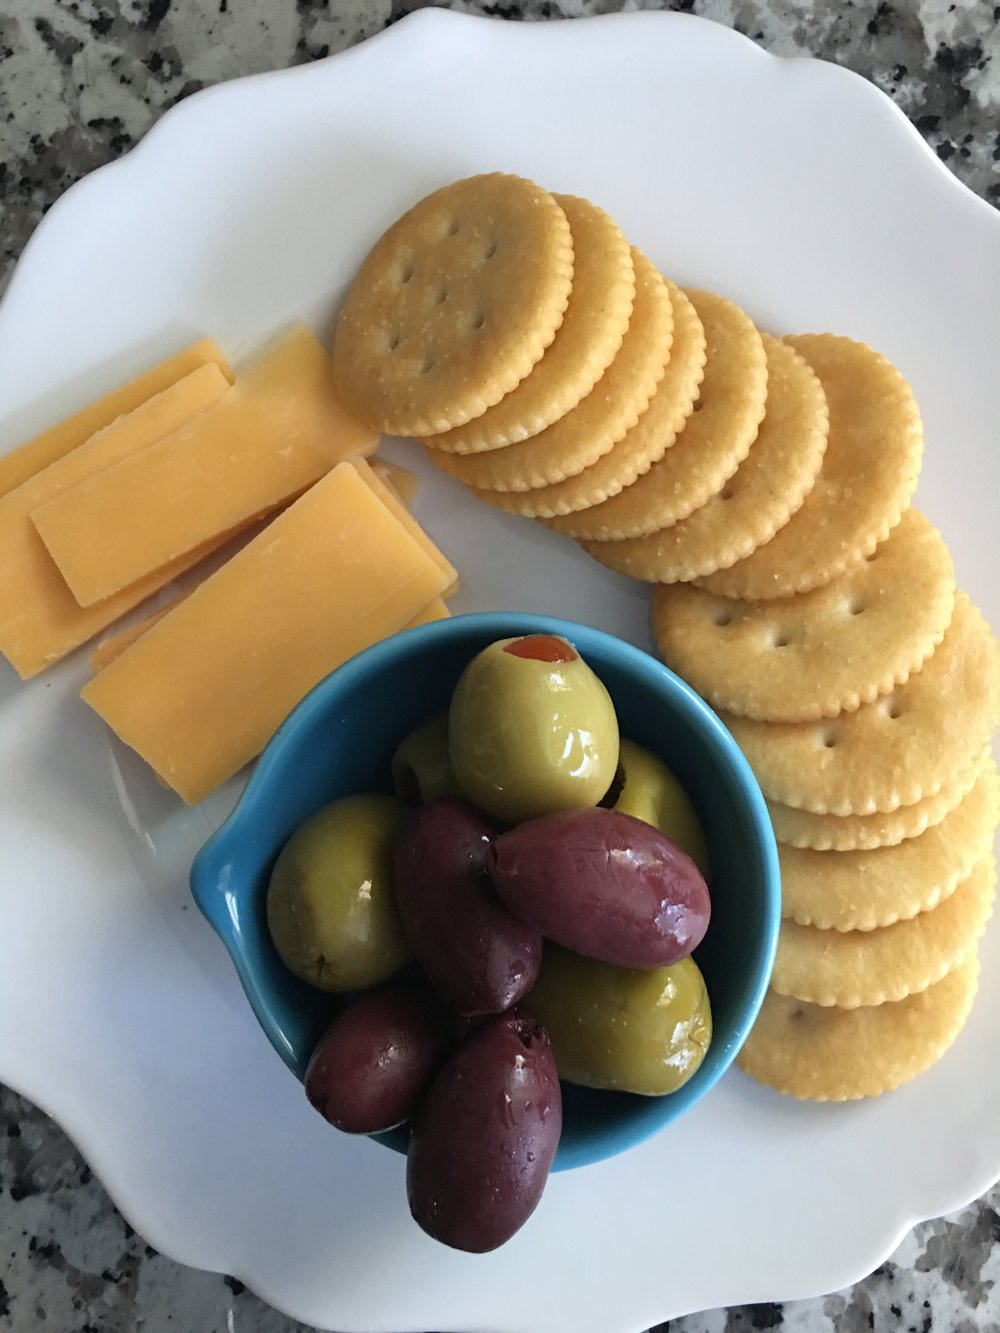 Cheese, crackers, and olives are the perfect when the lazies strike!